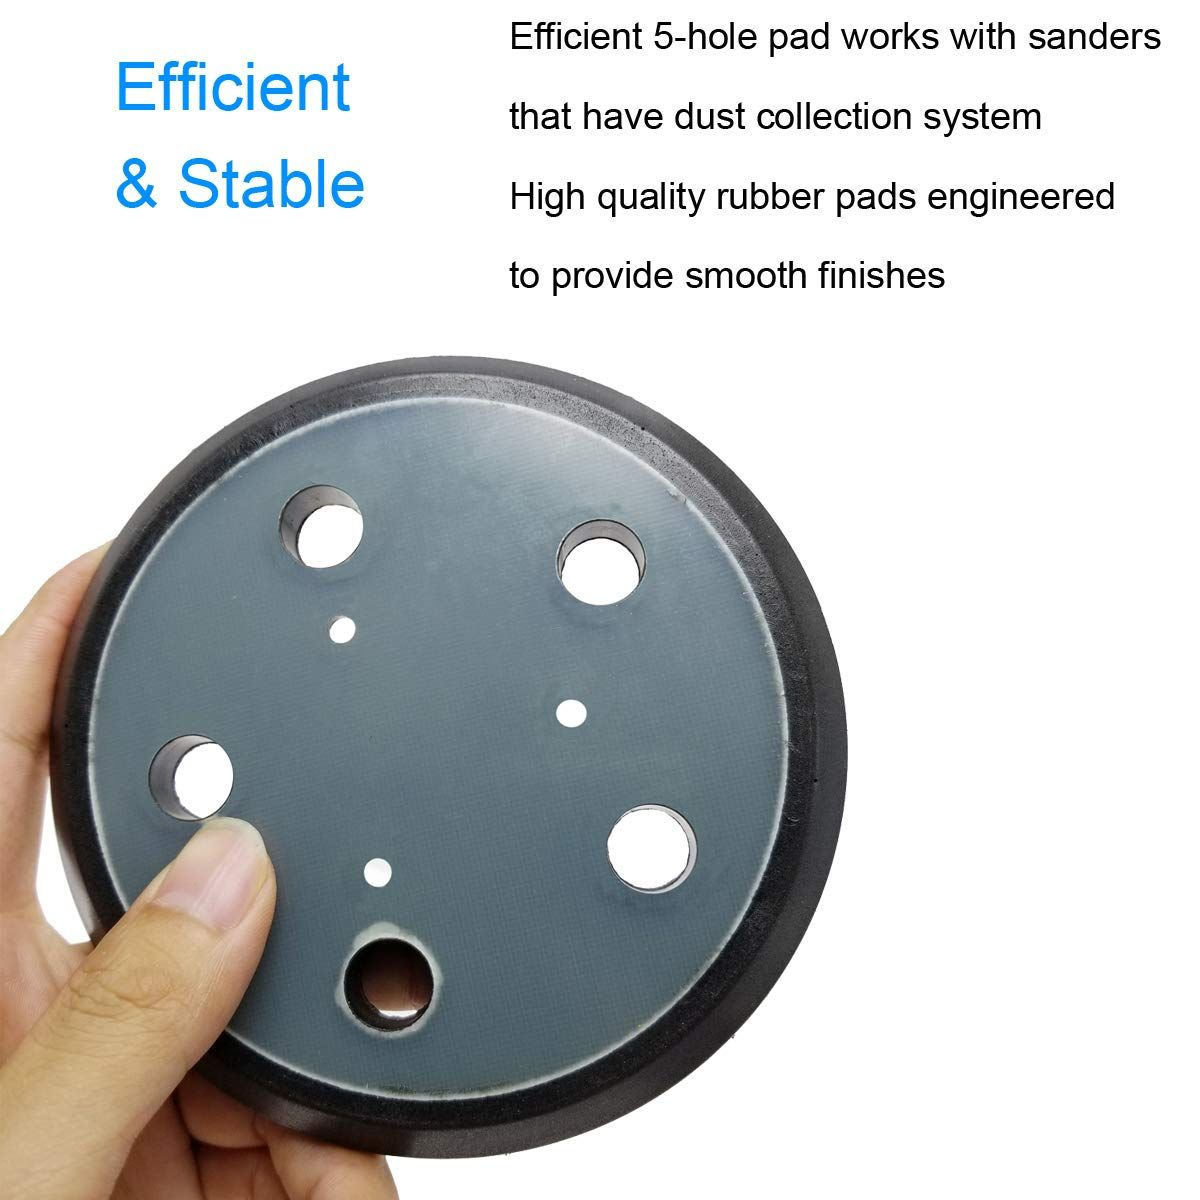 5 Inch Hook And Loop Sander Pad For Porter Cable 333 Random Orbit Sanders Ad Sander Ad Pad Loop Inch In 2020 Dream Rooms Sanders